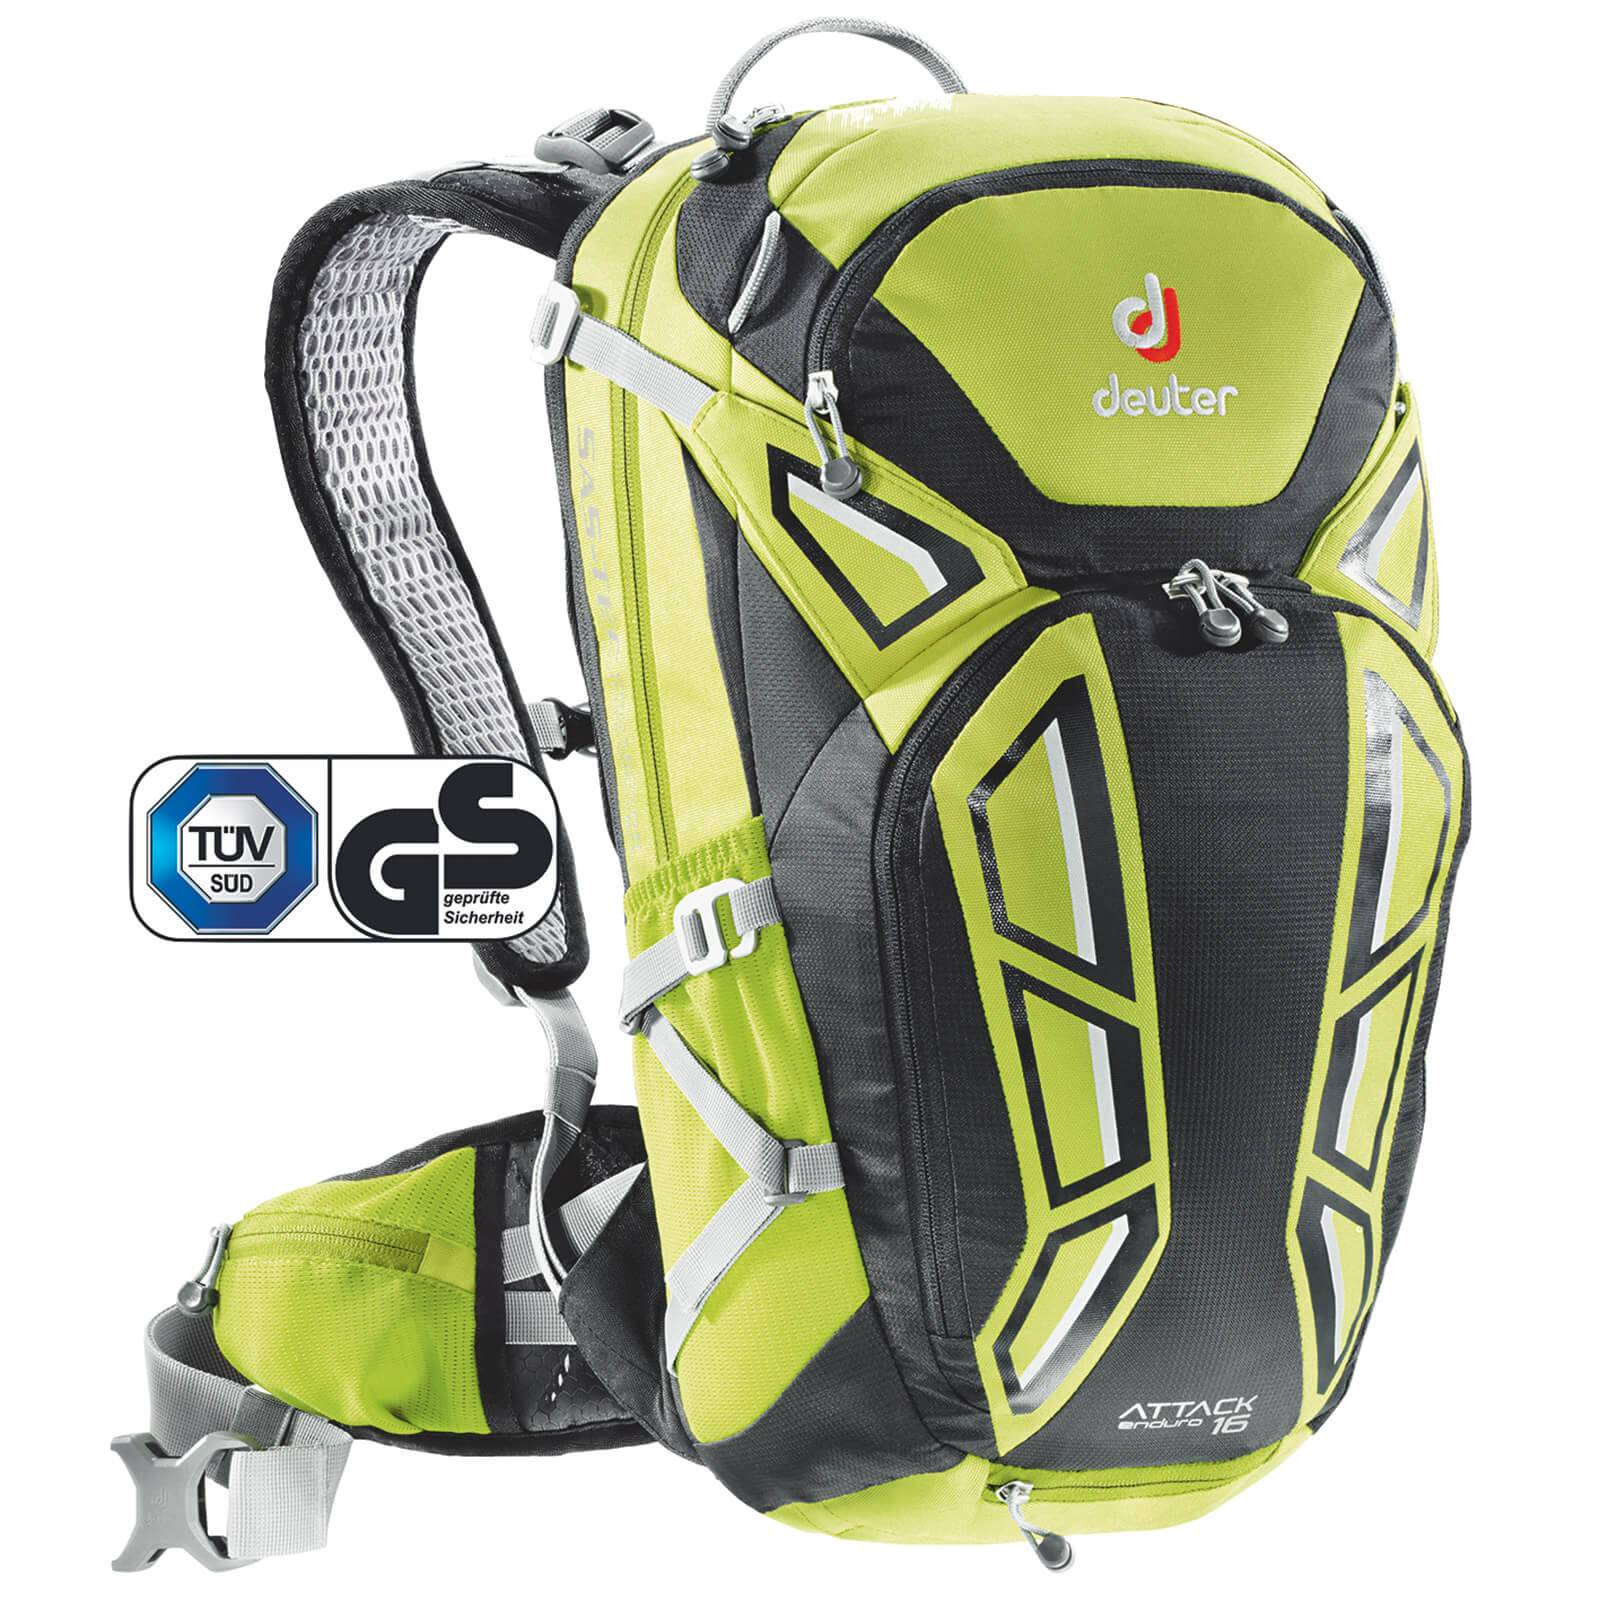 Deuter Attack Enduro 16L Backpack - Apple/Black